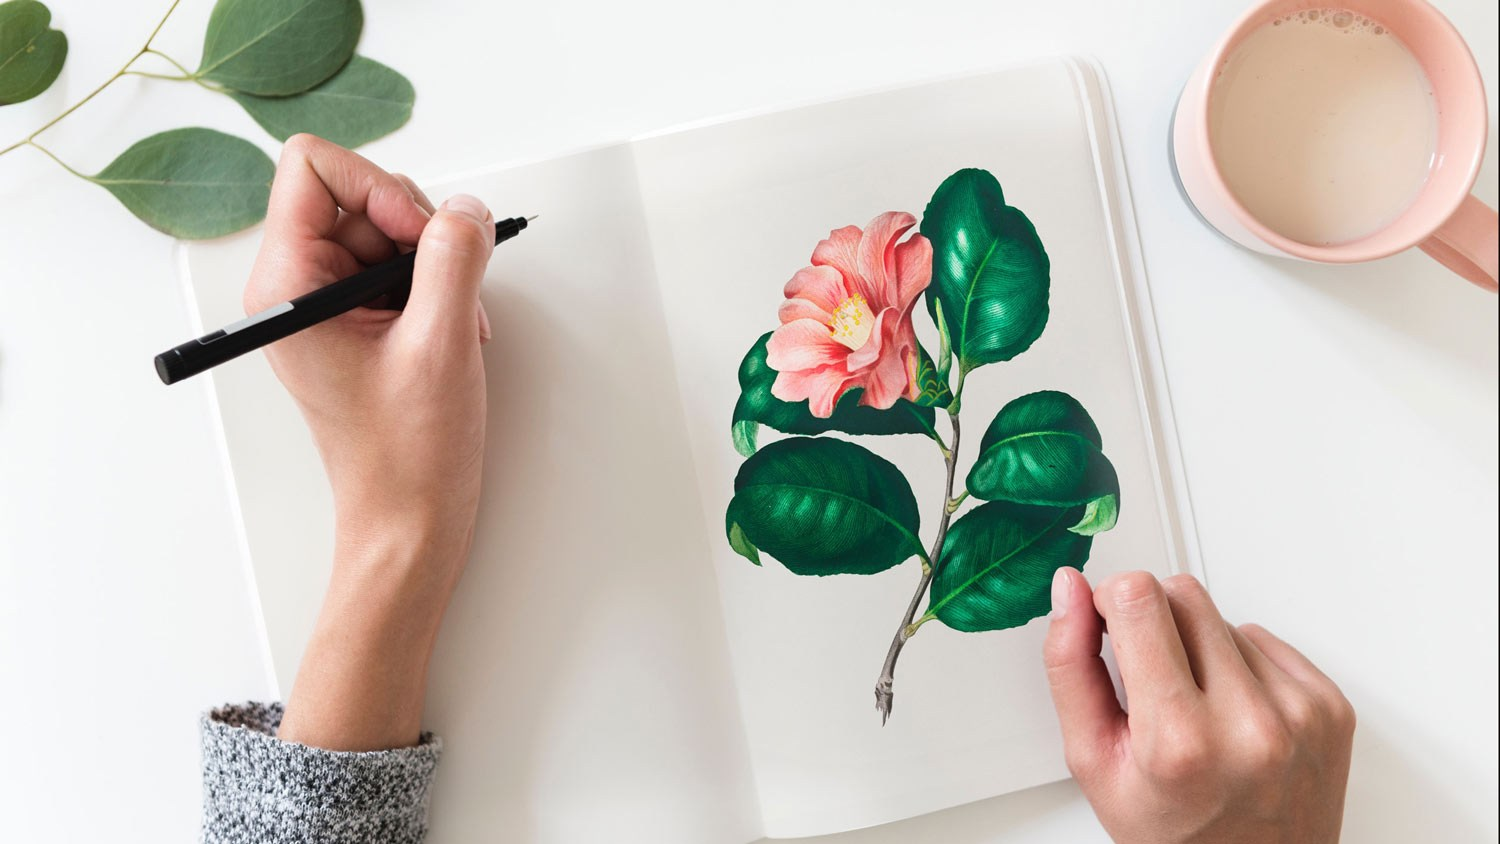 Hand with pen poised at flowered notebook